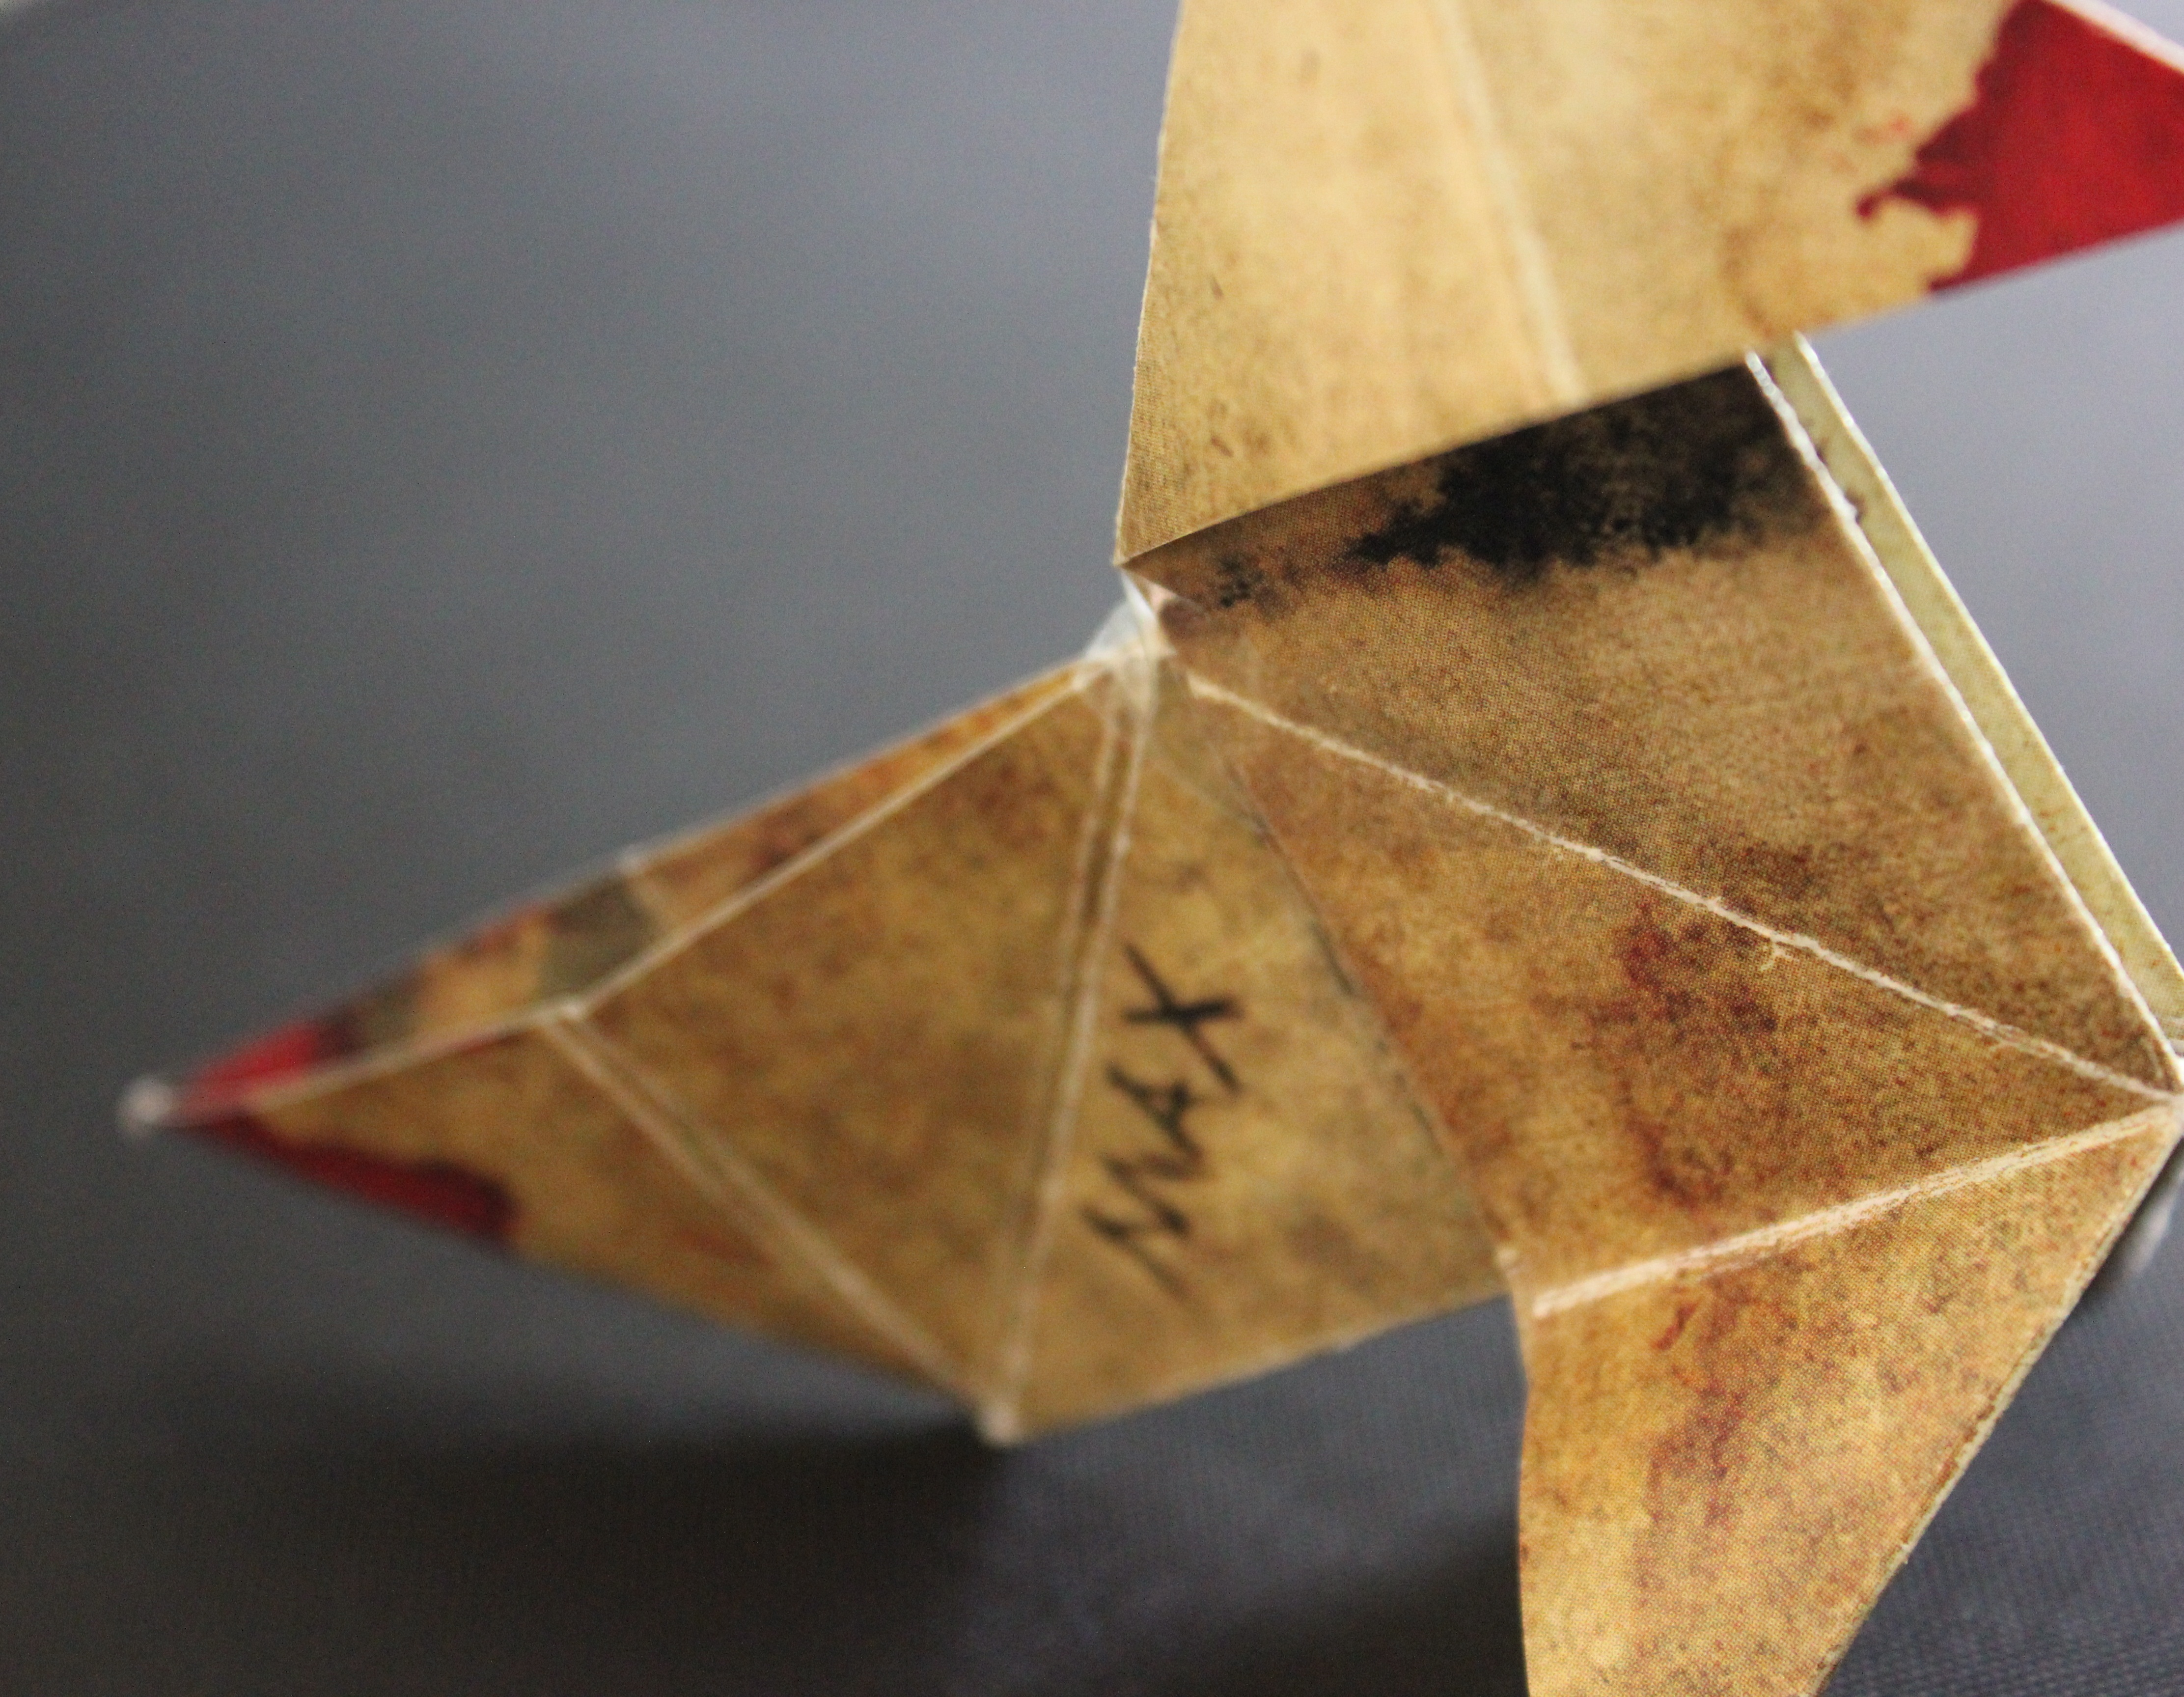 heavy rain origami killer�s bird � through a cracked lens